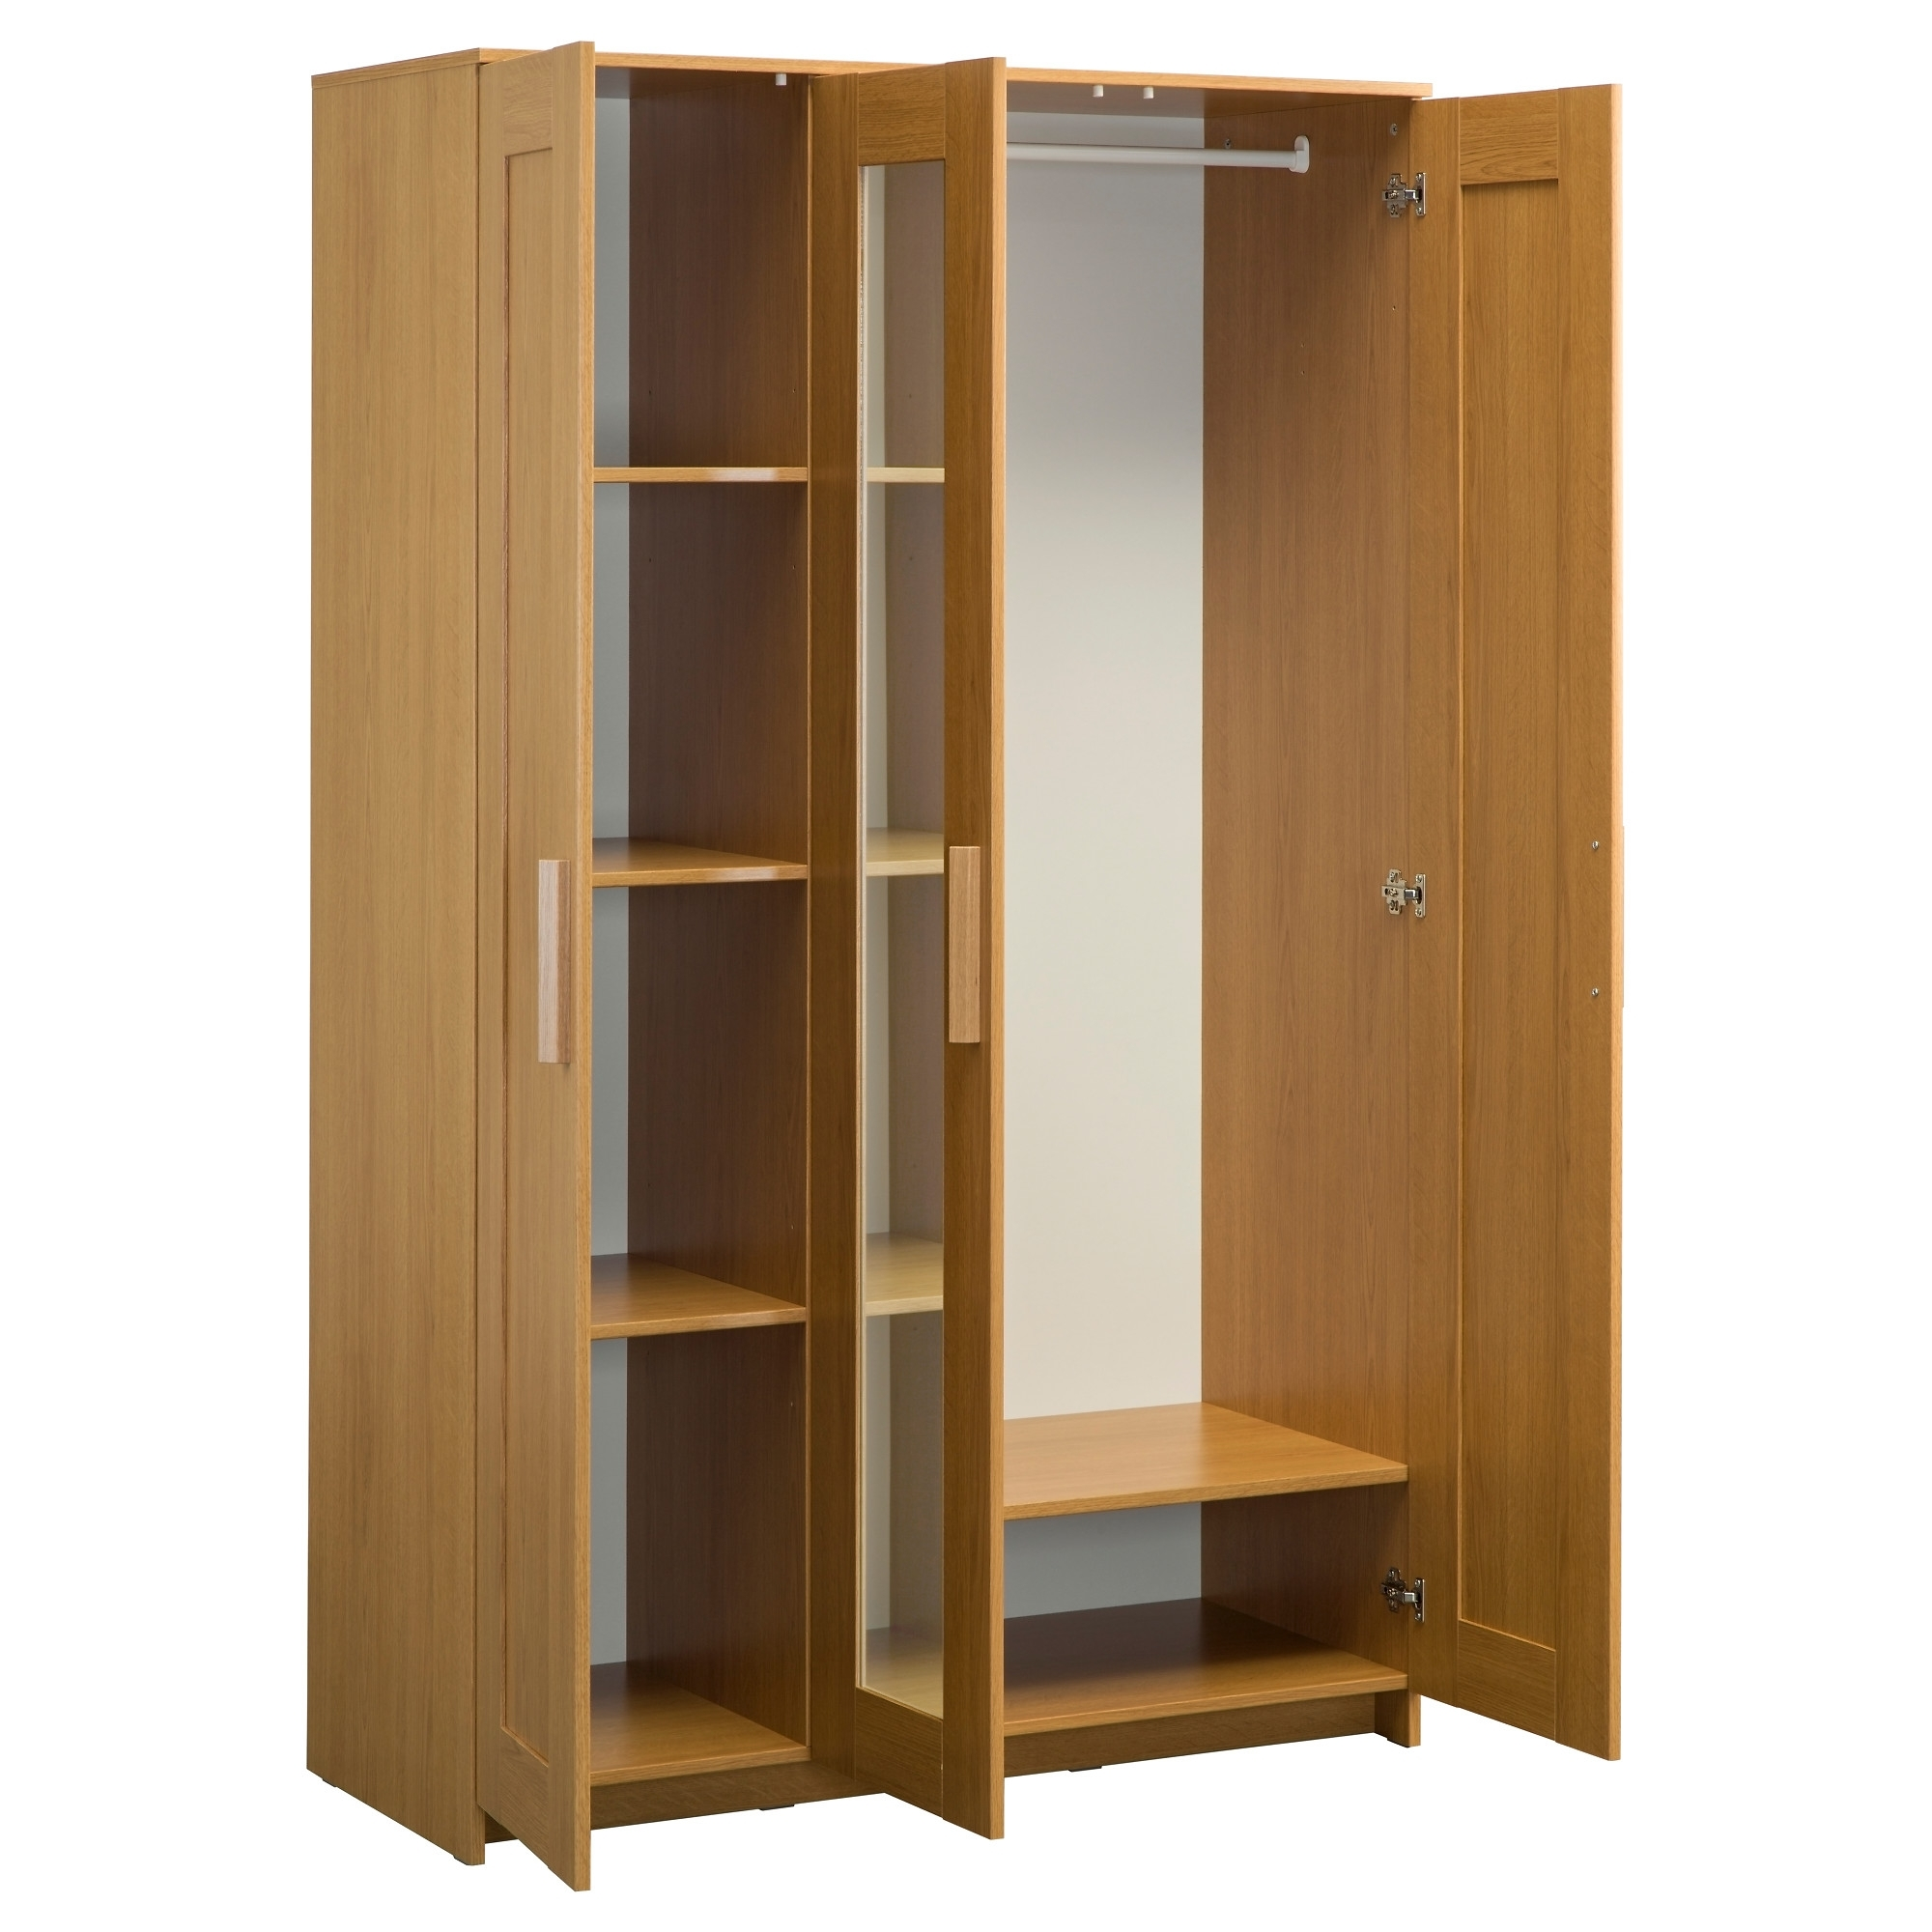 Fashionable 3 Door Pine Wardrobes For Brimnes Wardrobe With 3 Doors Oak Effect 117X190 Cm – Ikea (View 4 of 15)